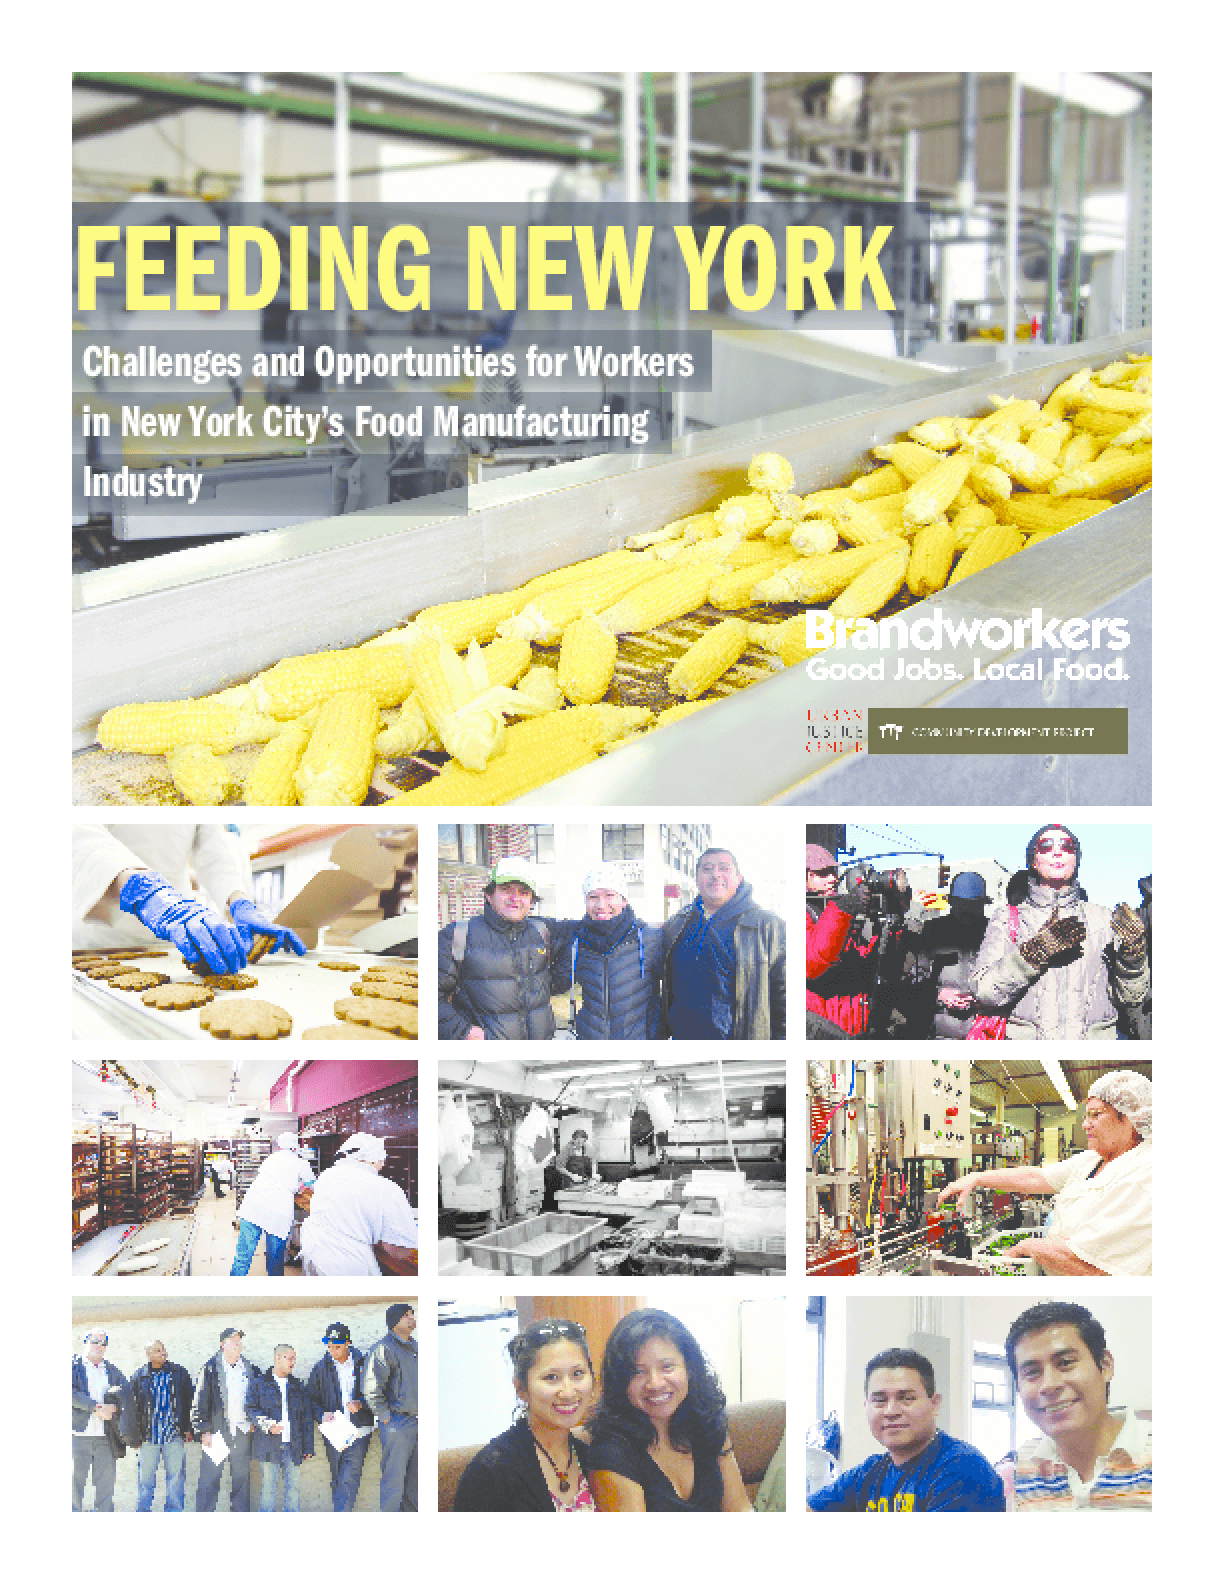 Feeding New York: Challenges and Opportunities for Workers in New York City's Food Manufacturing Industry